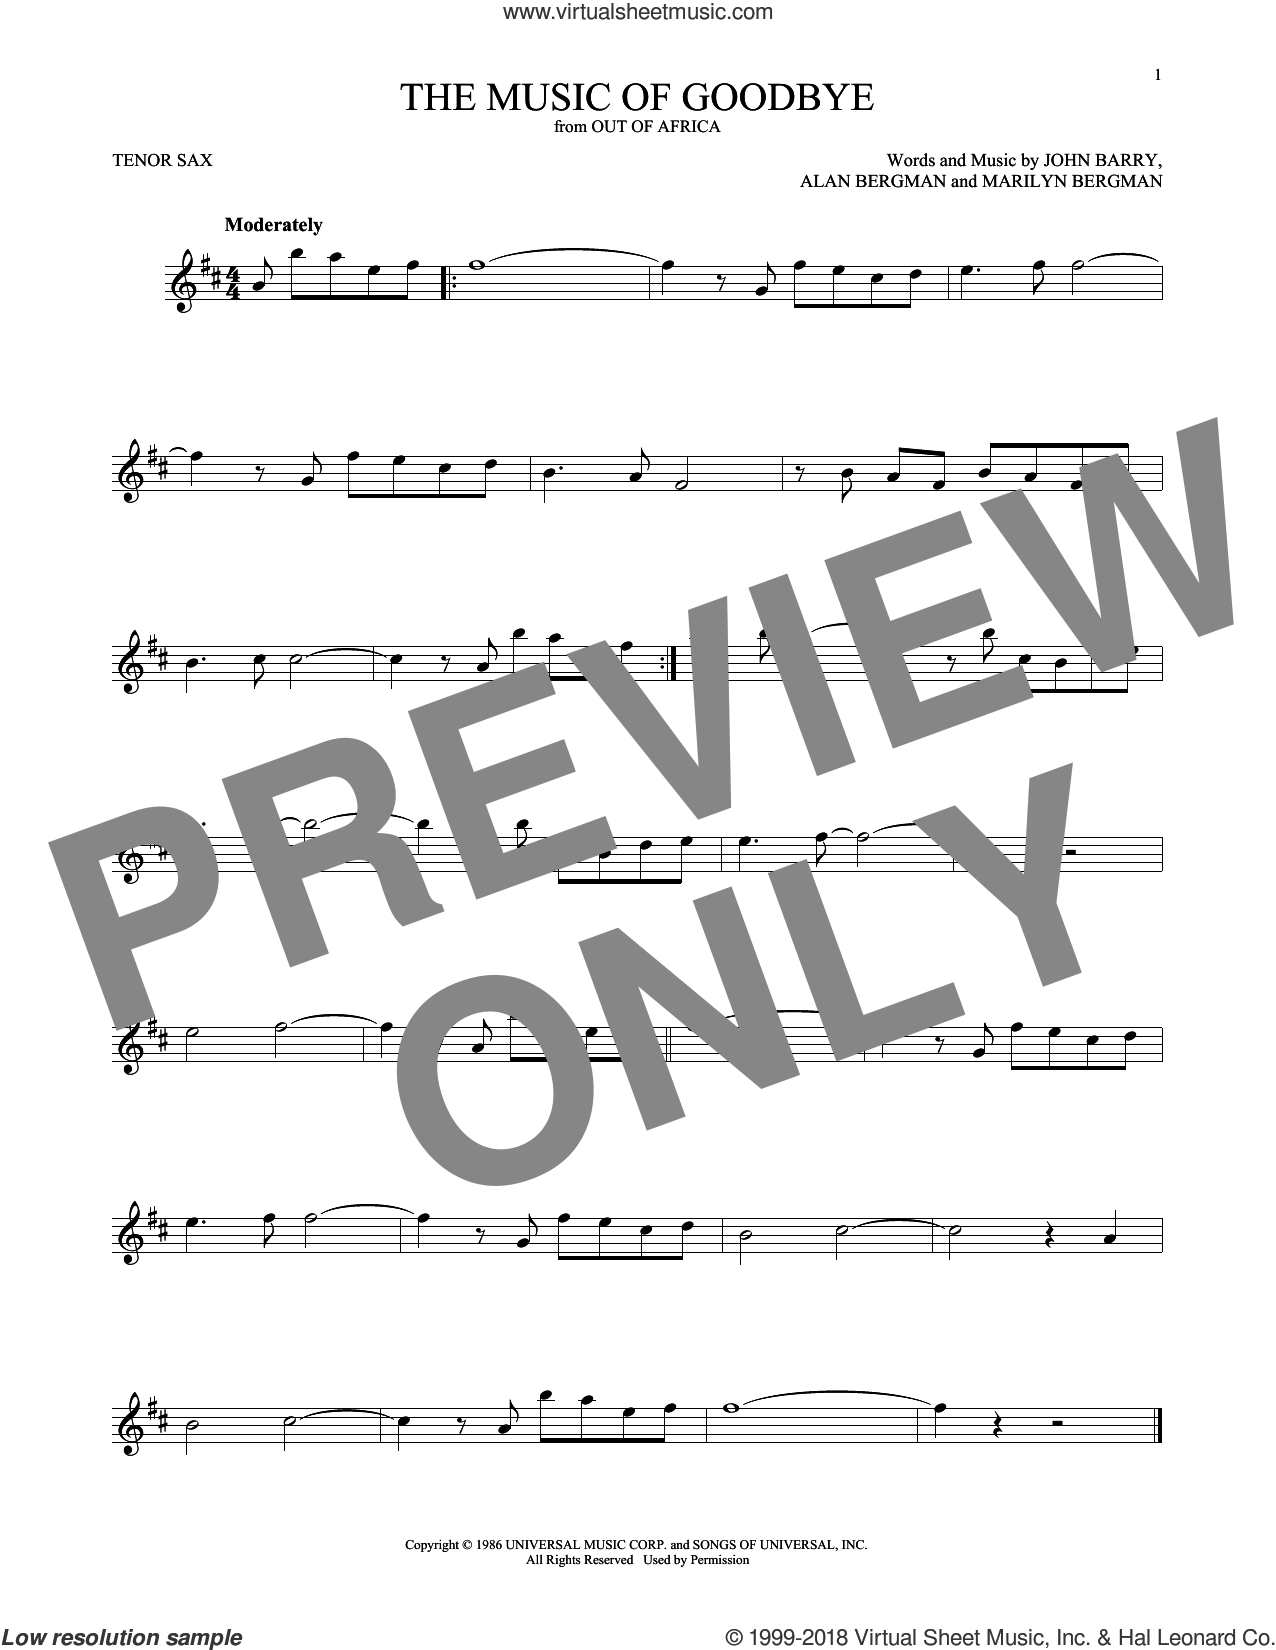 The Music Of Goodbye sheet music for tenor saxophone solo ( Sax) by John Barry, Alan Bergman and Marilyn Bergman, intermediate tenor saxophone ( Sax). Score Image Preview.